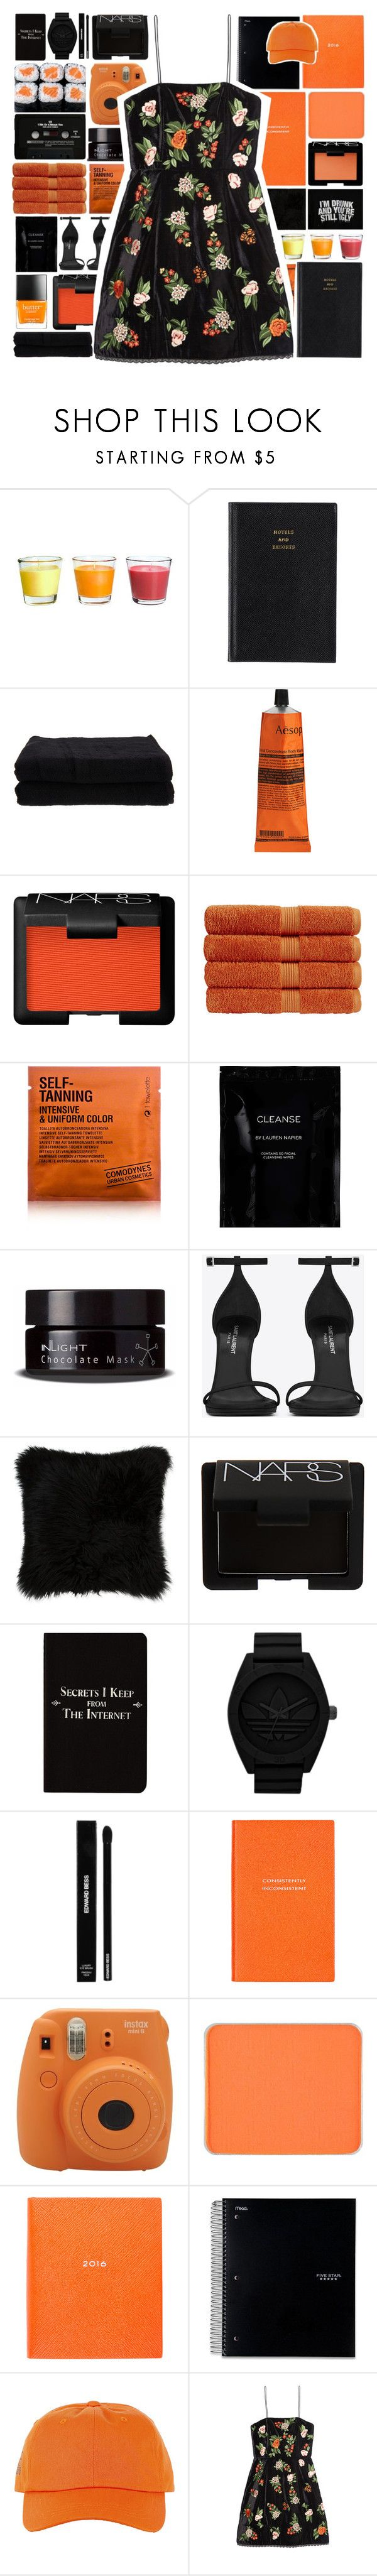 """""""OJ + BlK"""" by puhizaxox ❤ liked on Polyvore featuring Prada, Home Source International, Aesop, Butter London, NARS Cosmetics, Christy, Comodynes, Cleanse by Lauren Napier, Floyd and Inlight Skincare"""